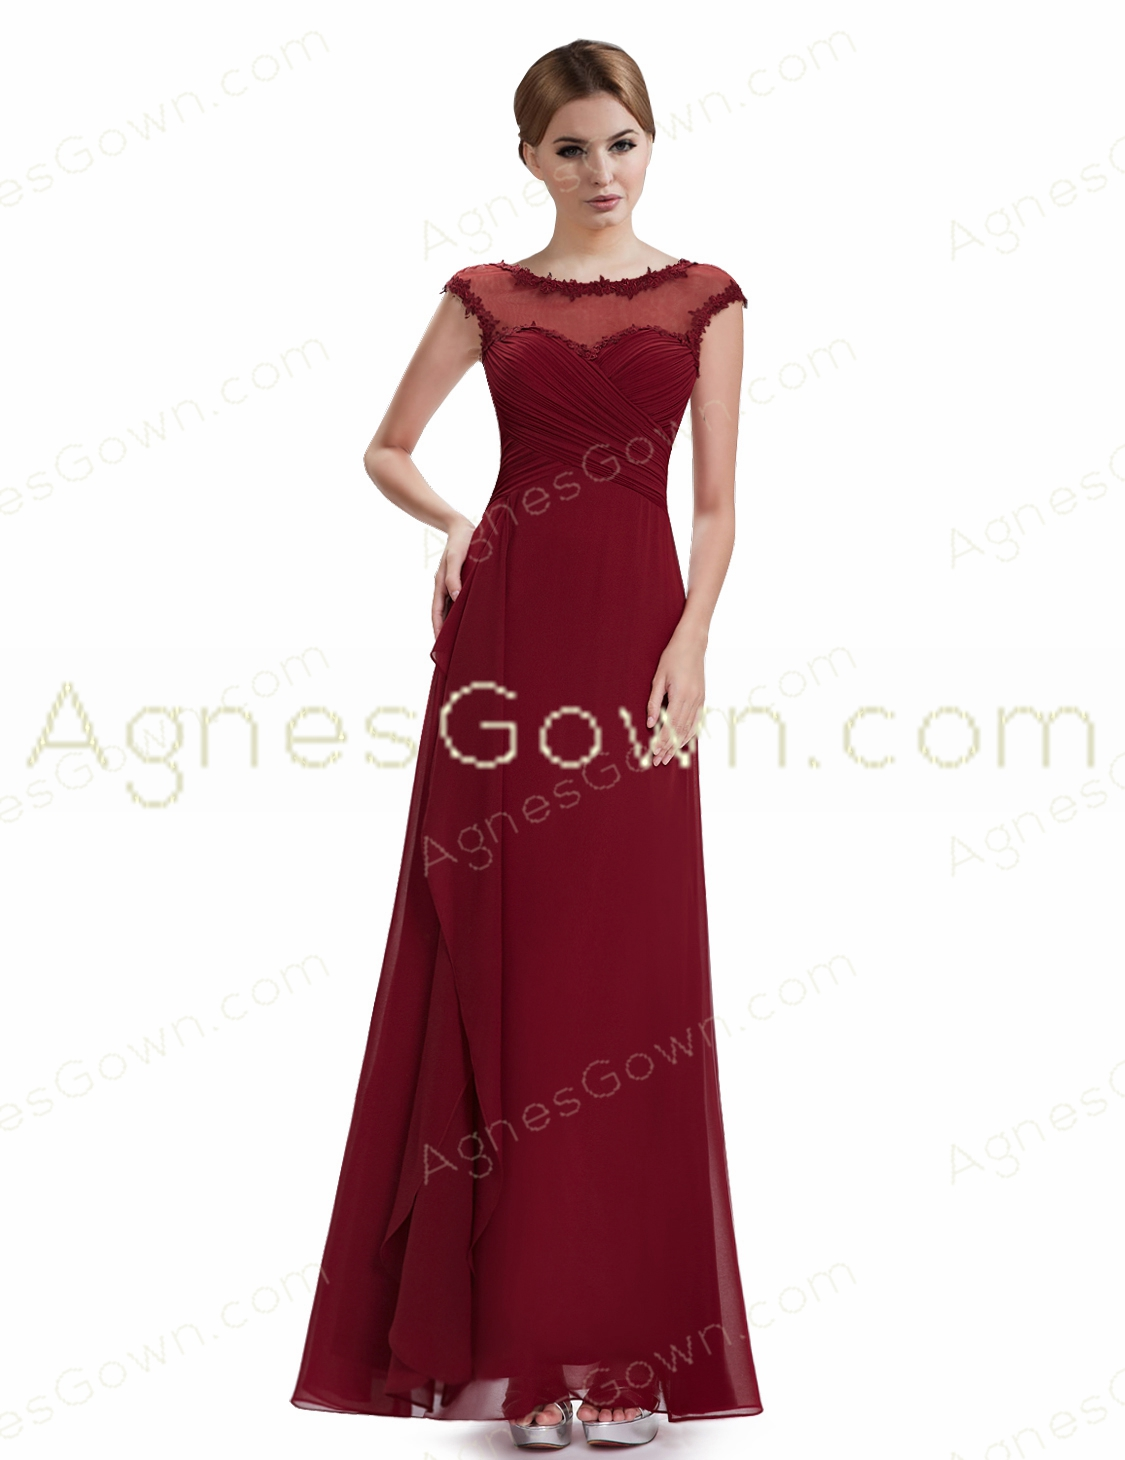 Illusion Neckline Dark Red Prom Dress With Lace